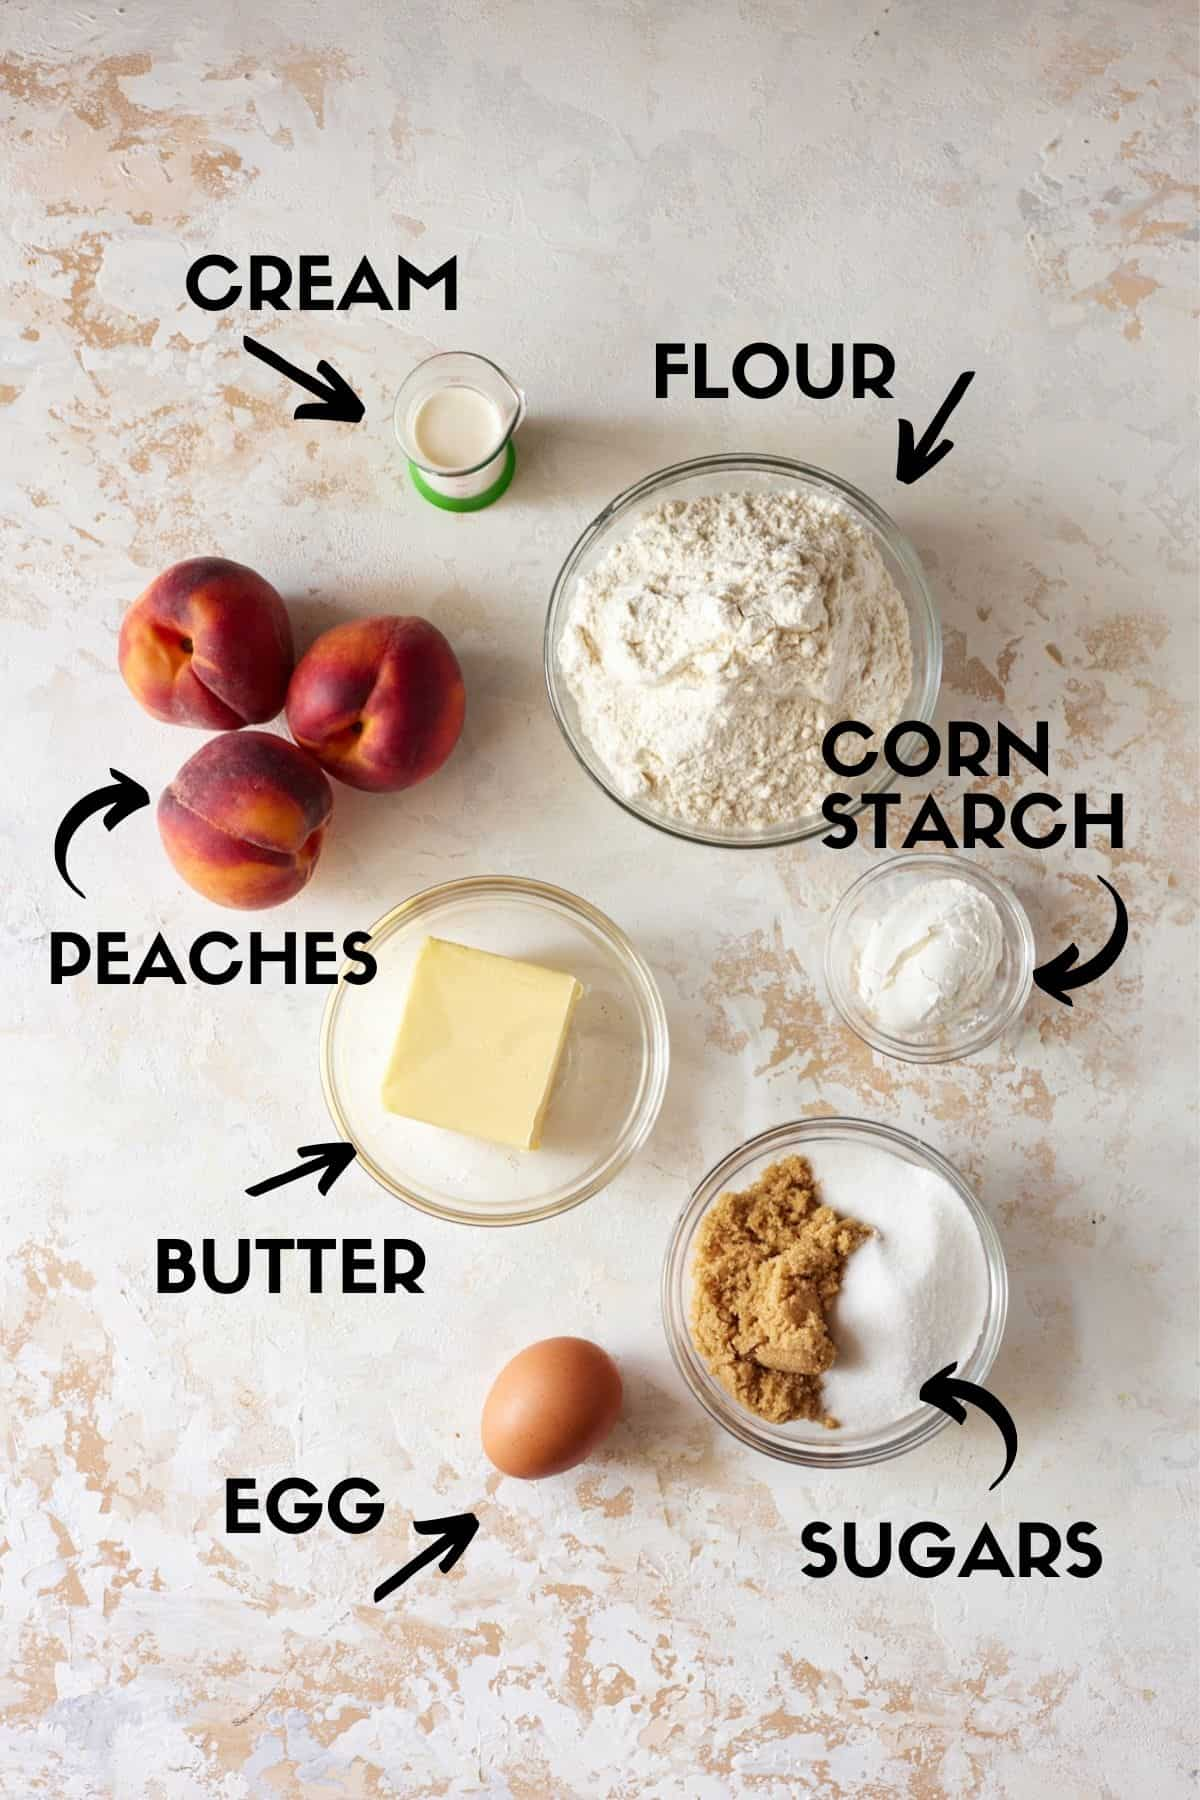 Ingredients for peach crumble.